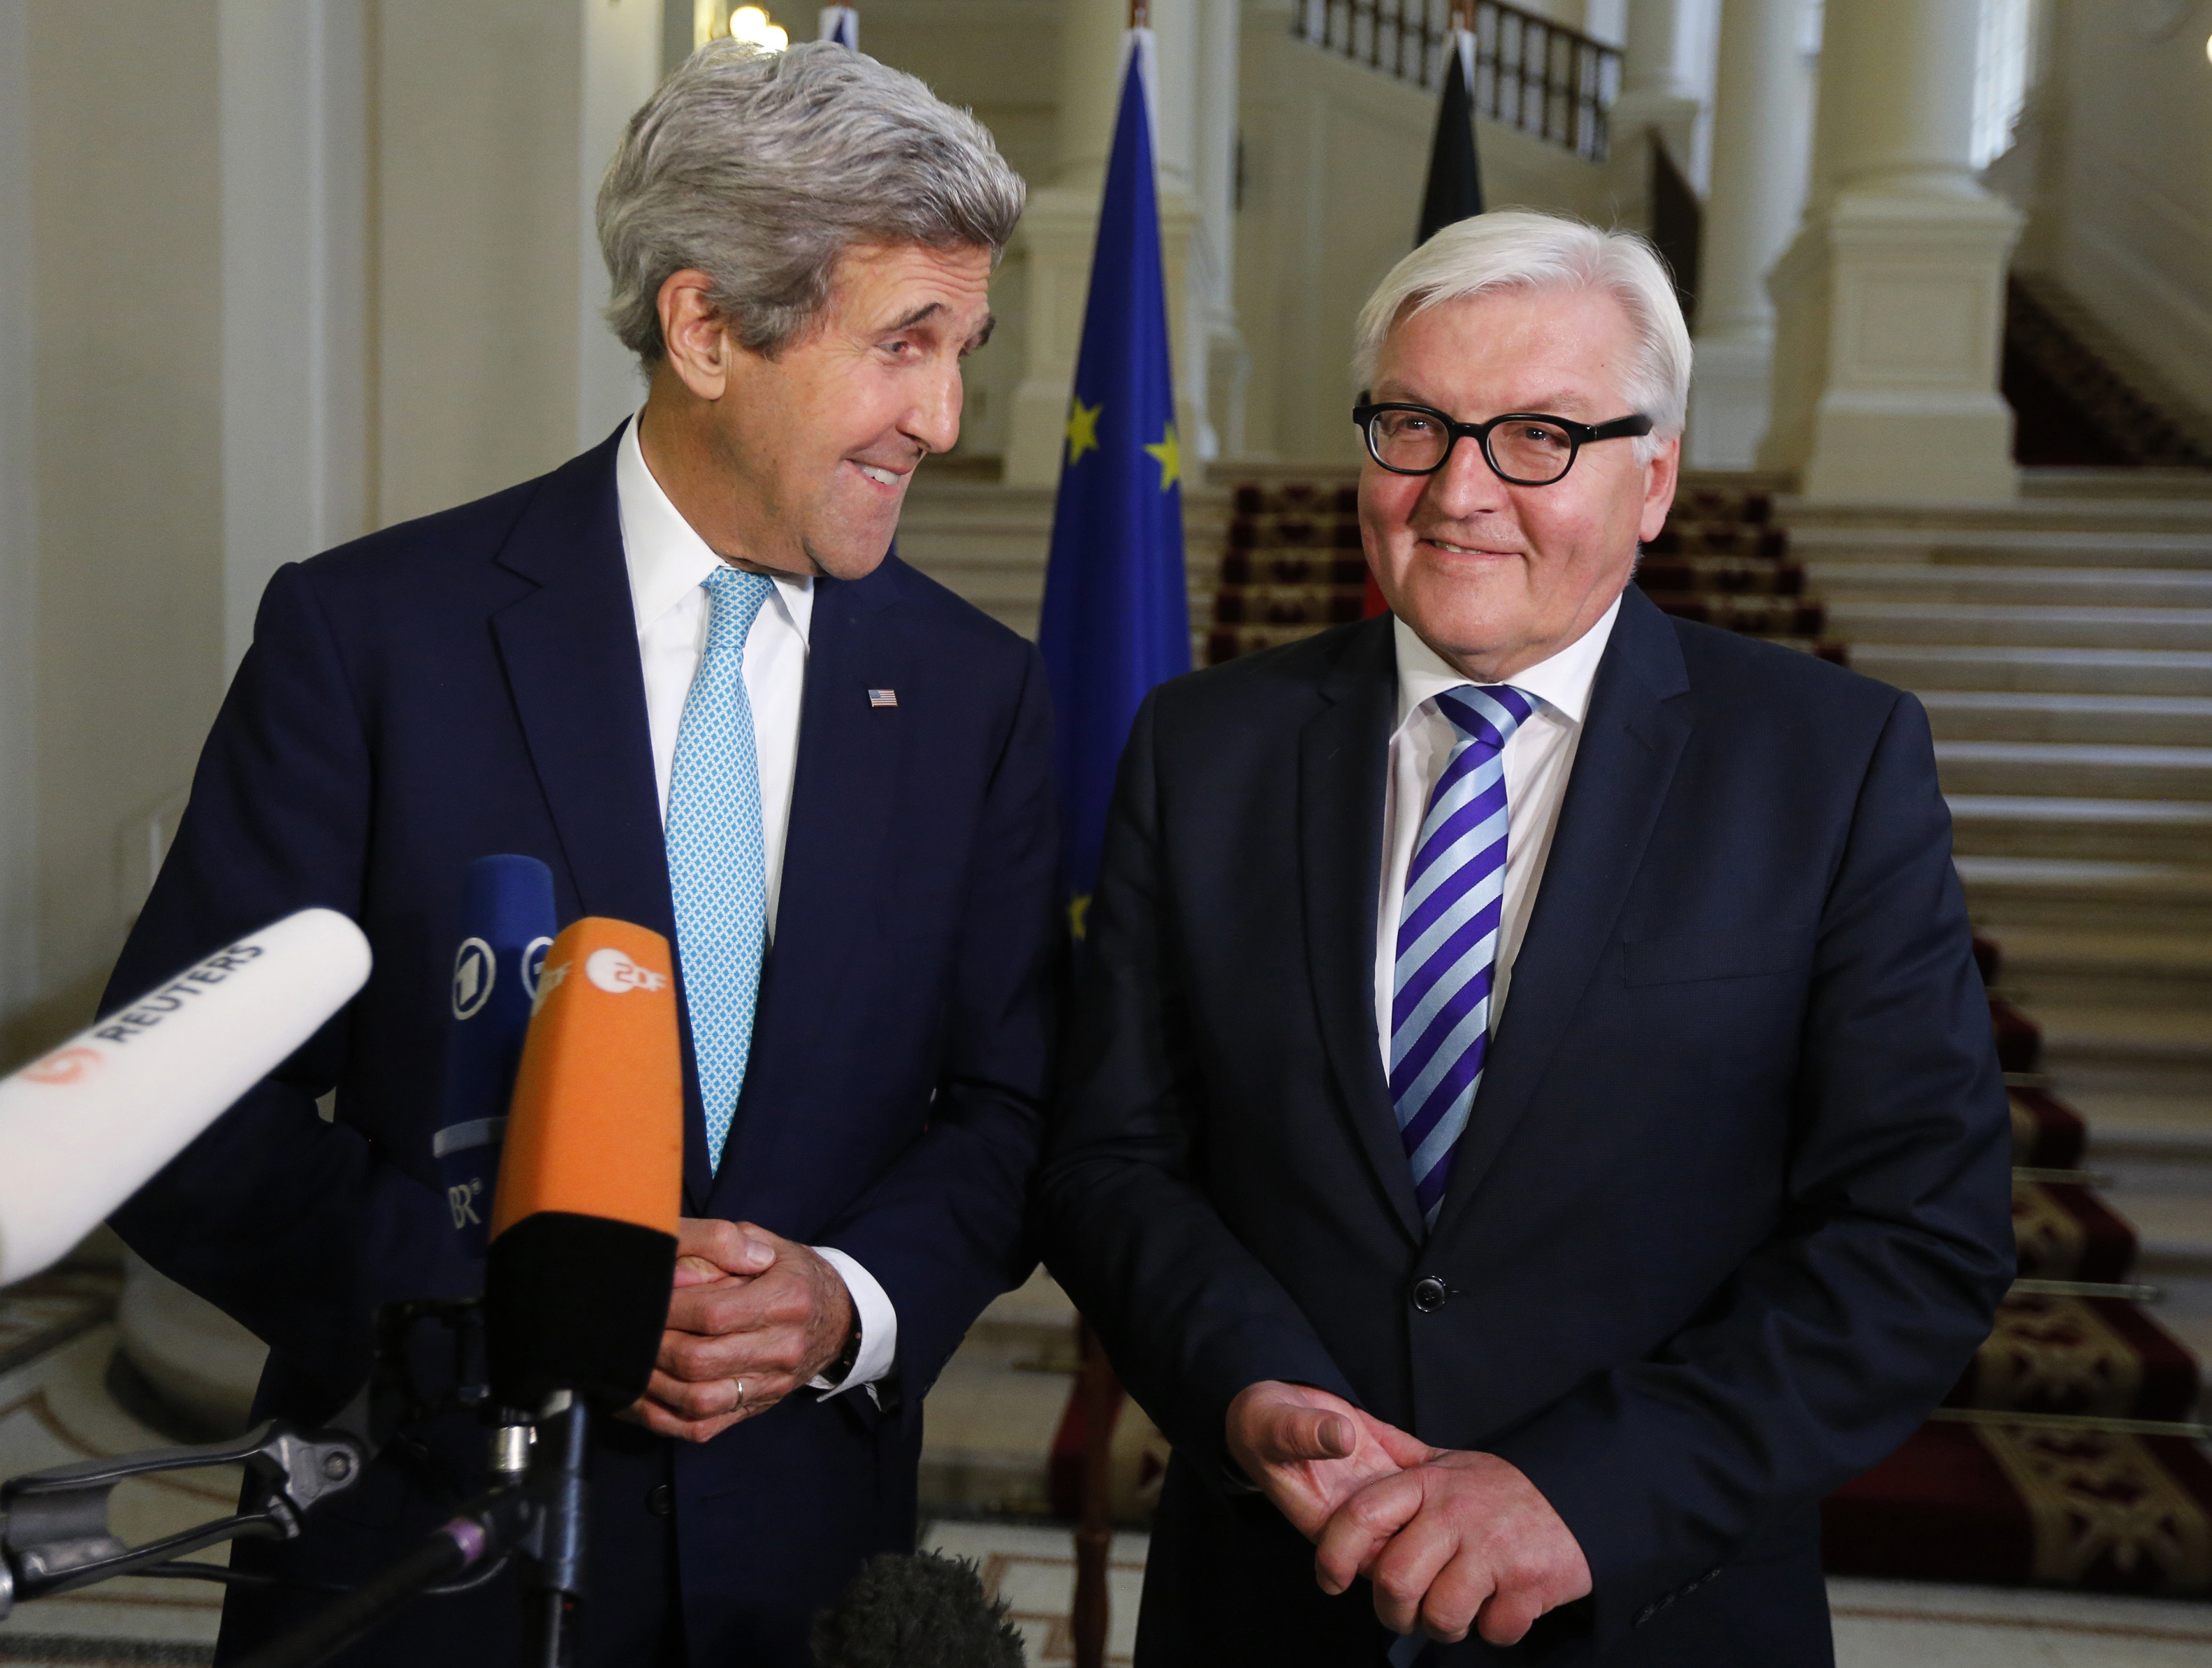 U.S. Secretary of State John Kerry, left and German Foreign Minister Frank-Walter Steinmeier during a press conference, after talks between the foreign ministers of the six powers negotiating with Tehran on its nuclear program, in Vienna, Austria on July 13, 2014.